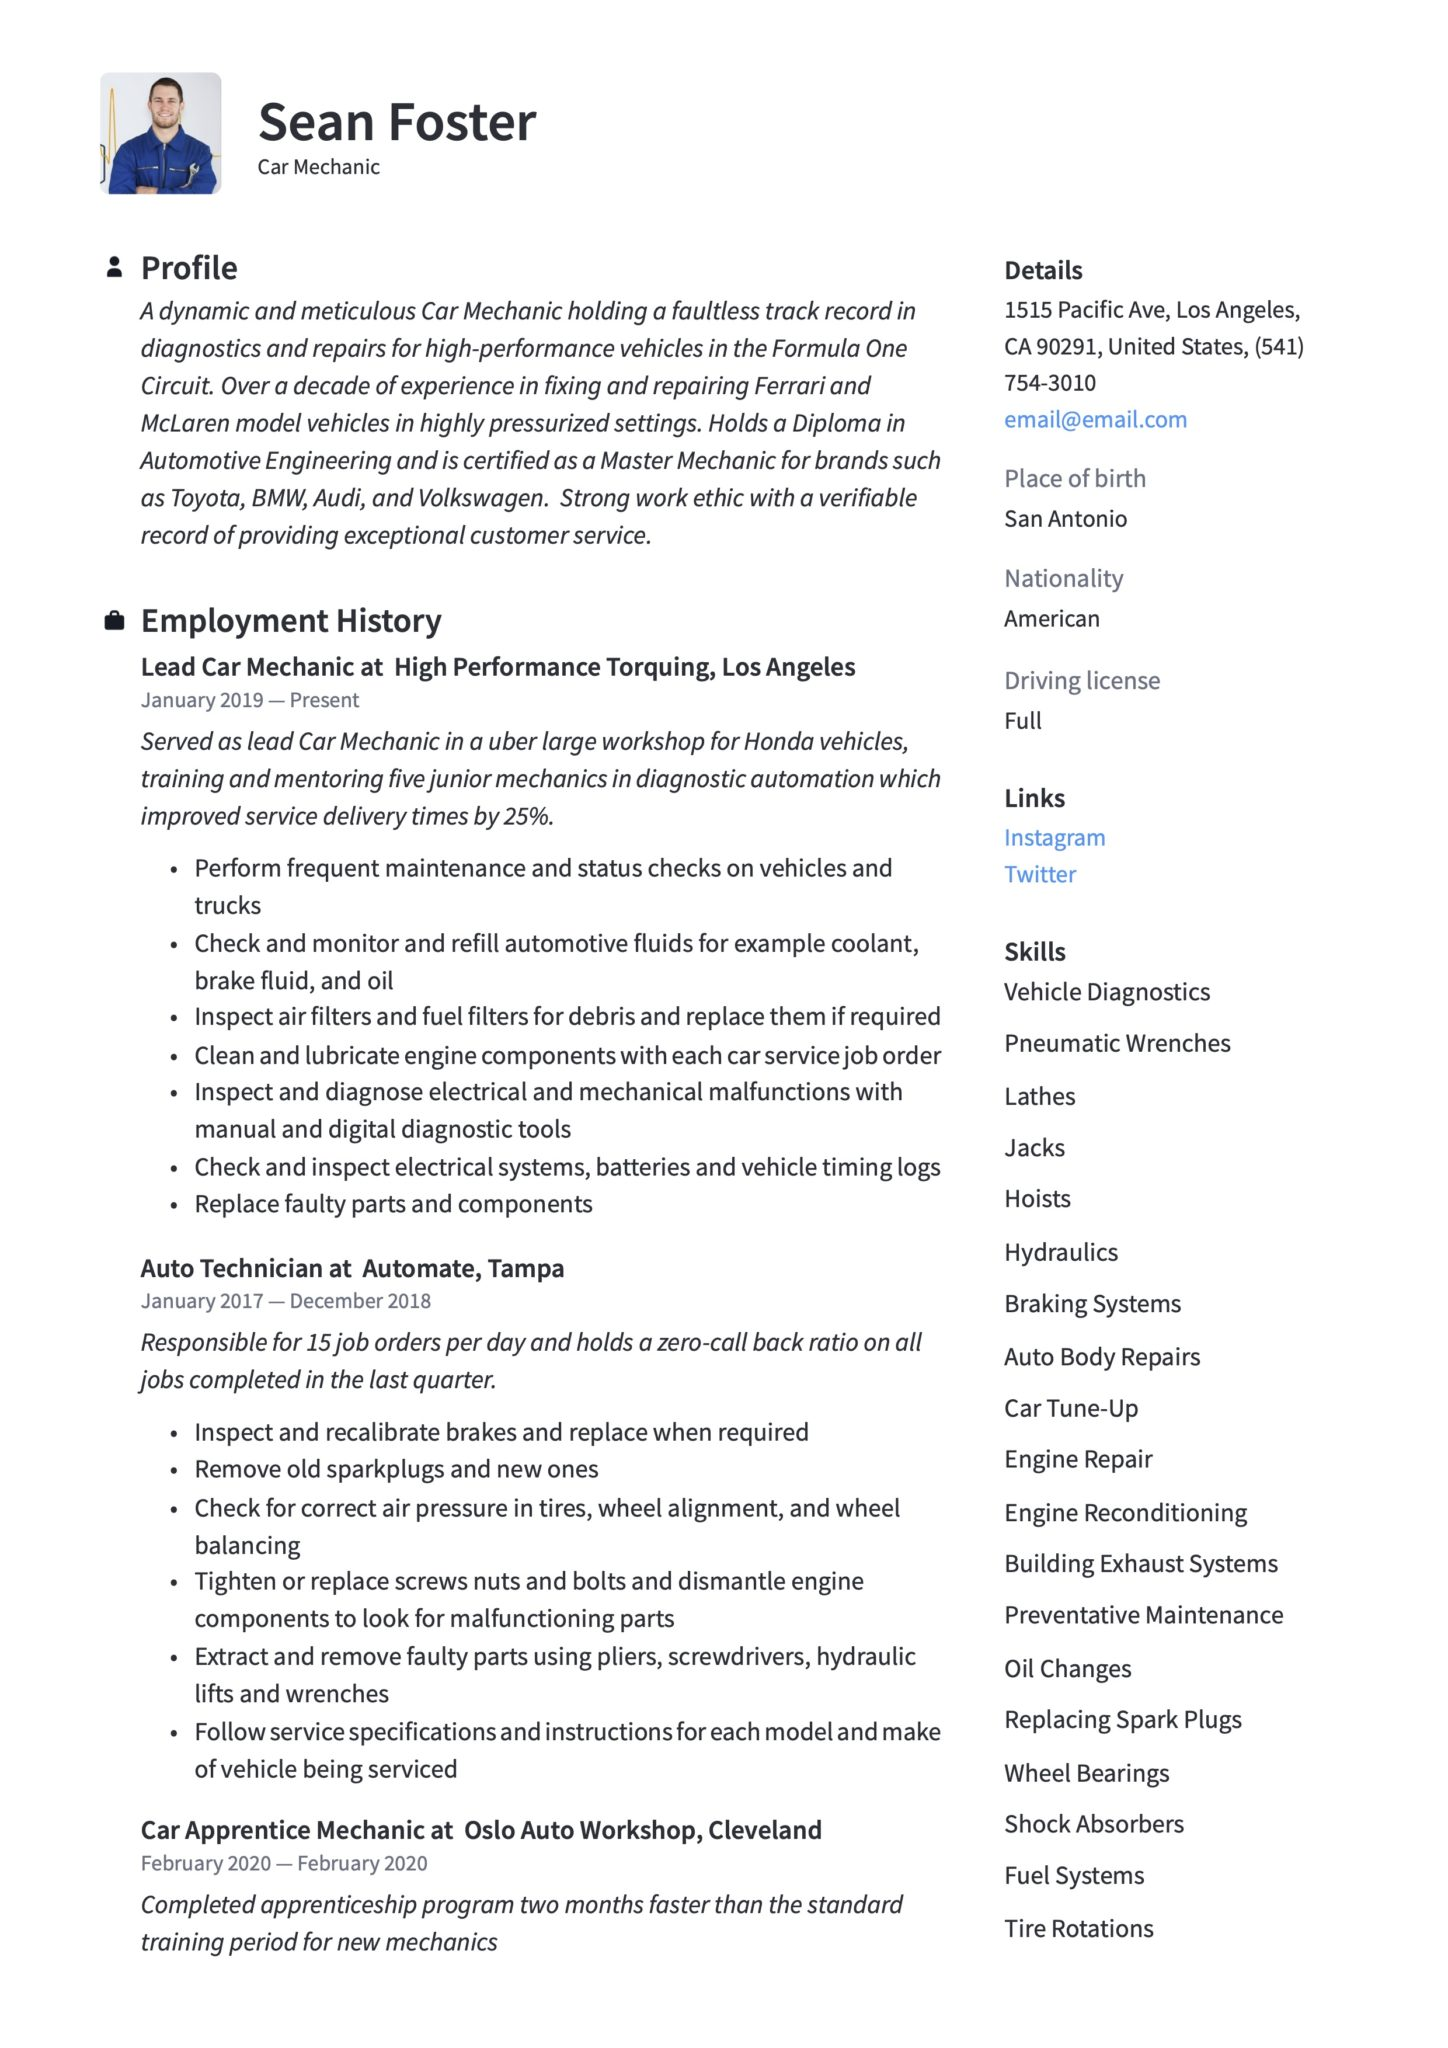 car mechanic resume guide examples automotive technician scaled lash extension artist Resume Automotive Technician Resume Examples